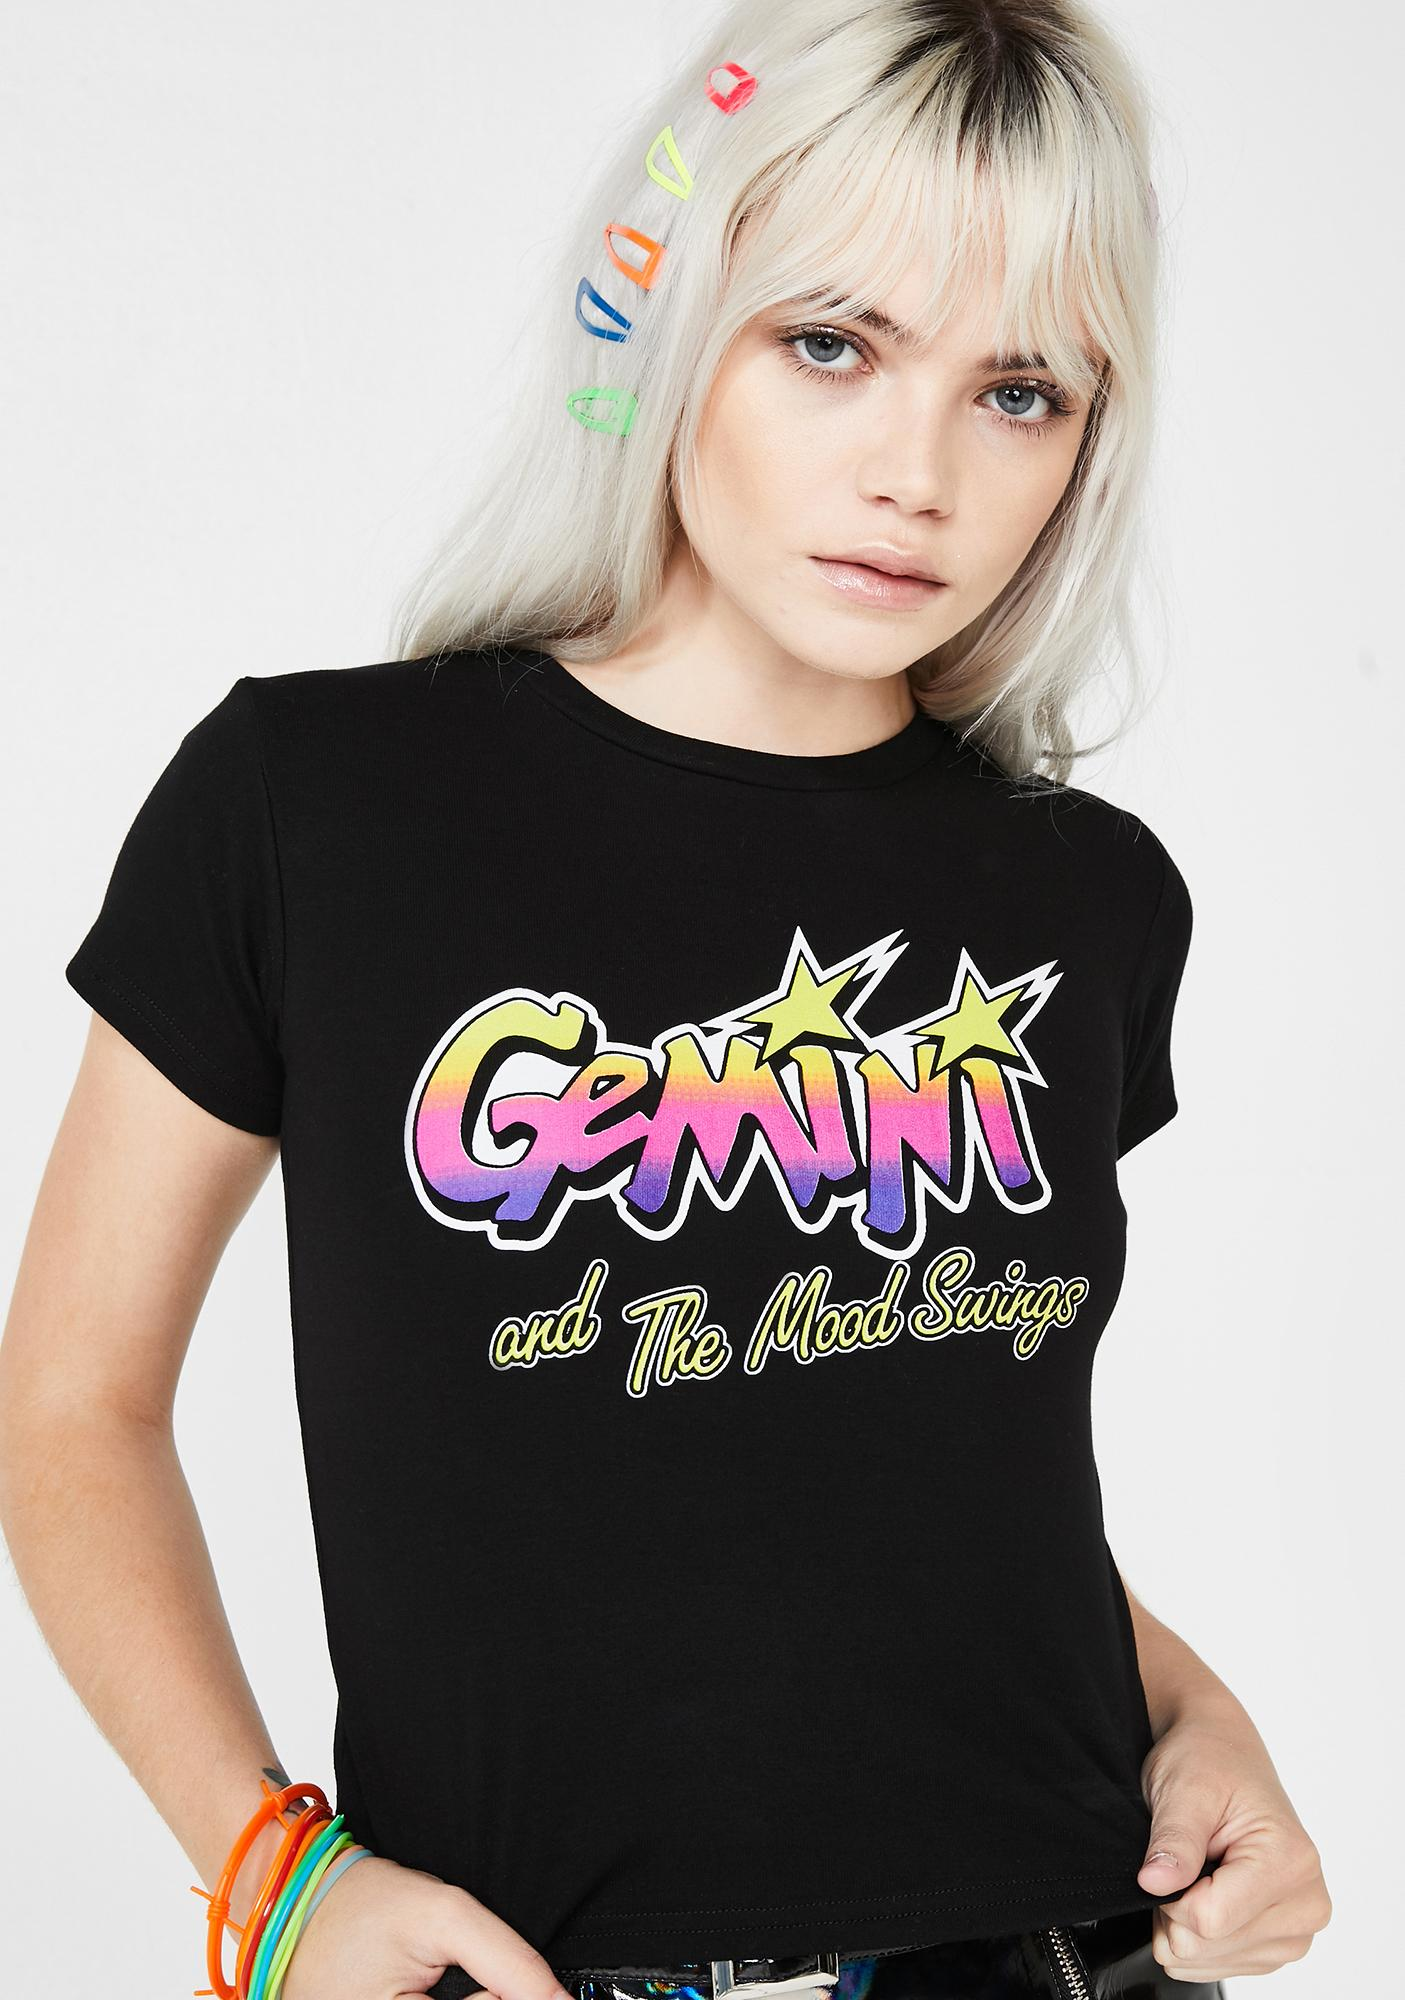 e596b550664 HOROSCOPEZ Gemini And The Mood Swings Graphic Tee | Dolls Kill